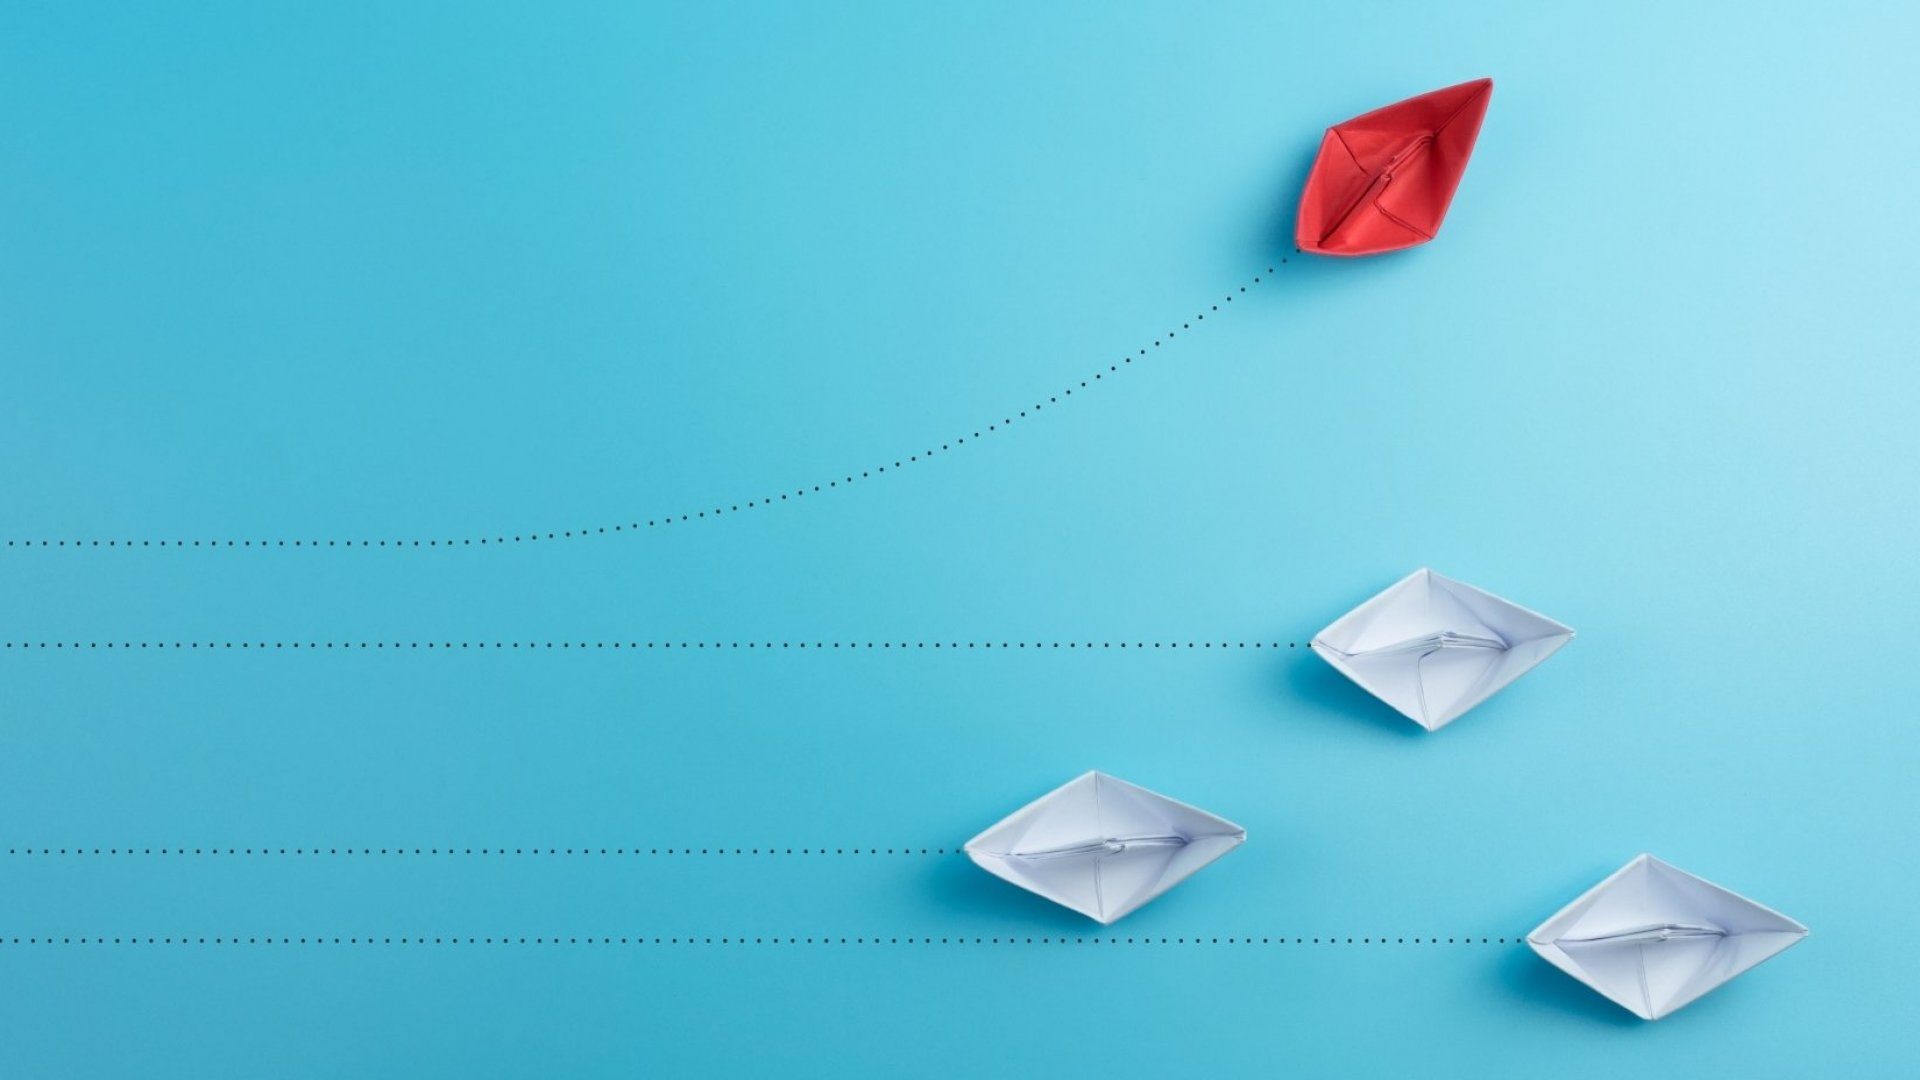 5 Leadership Blind Spots That Limit Your Ability to Keep Up With Change